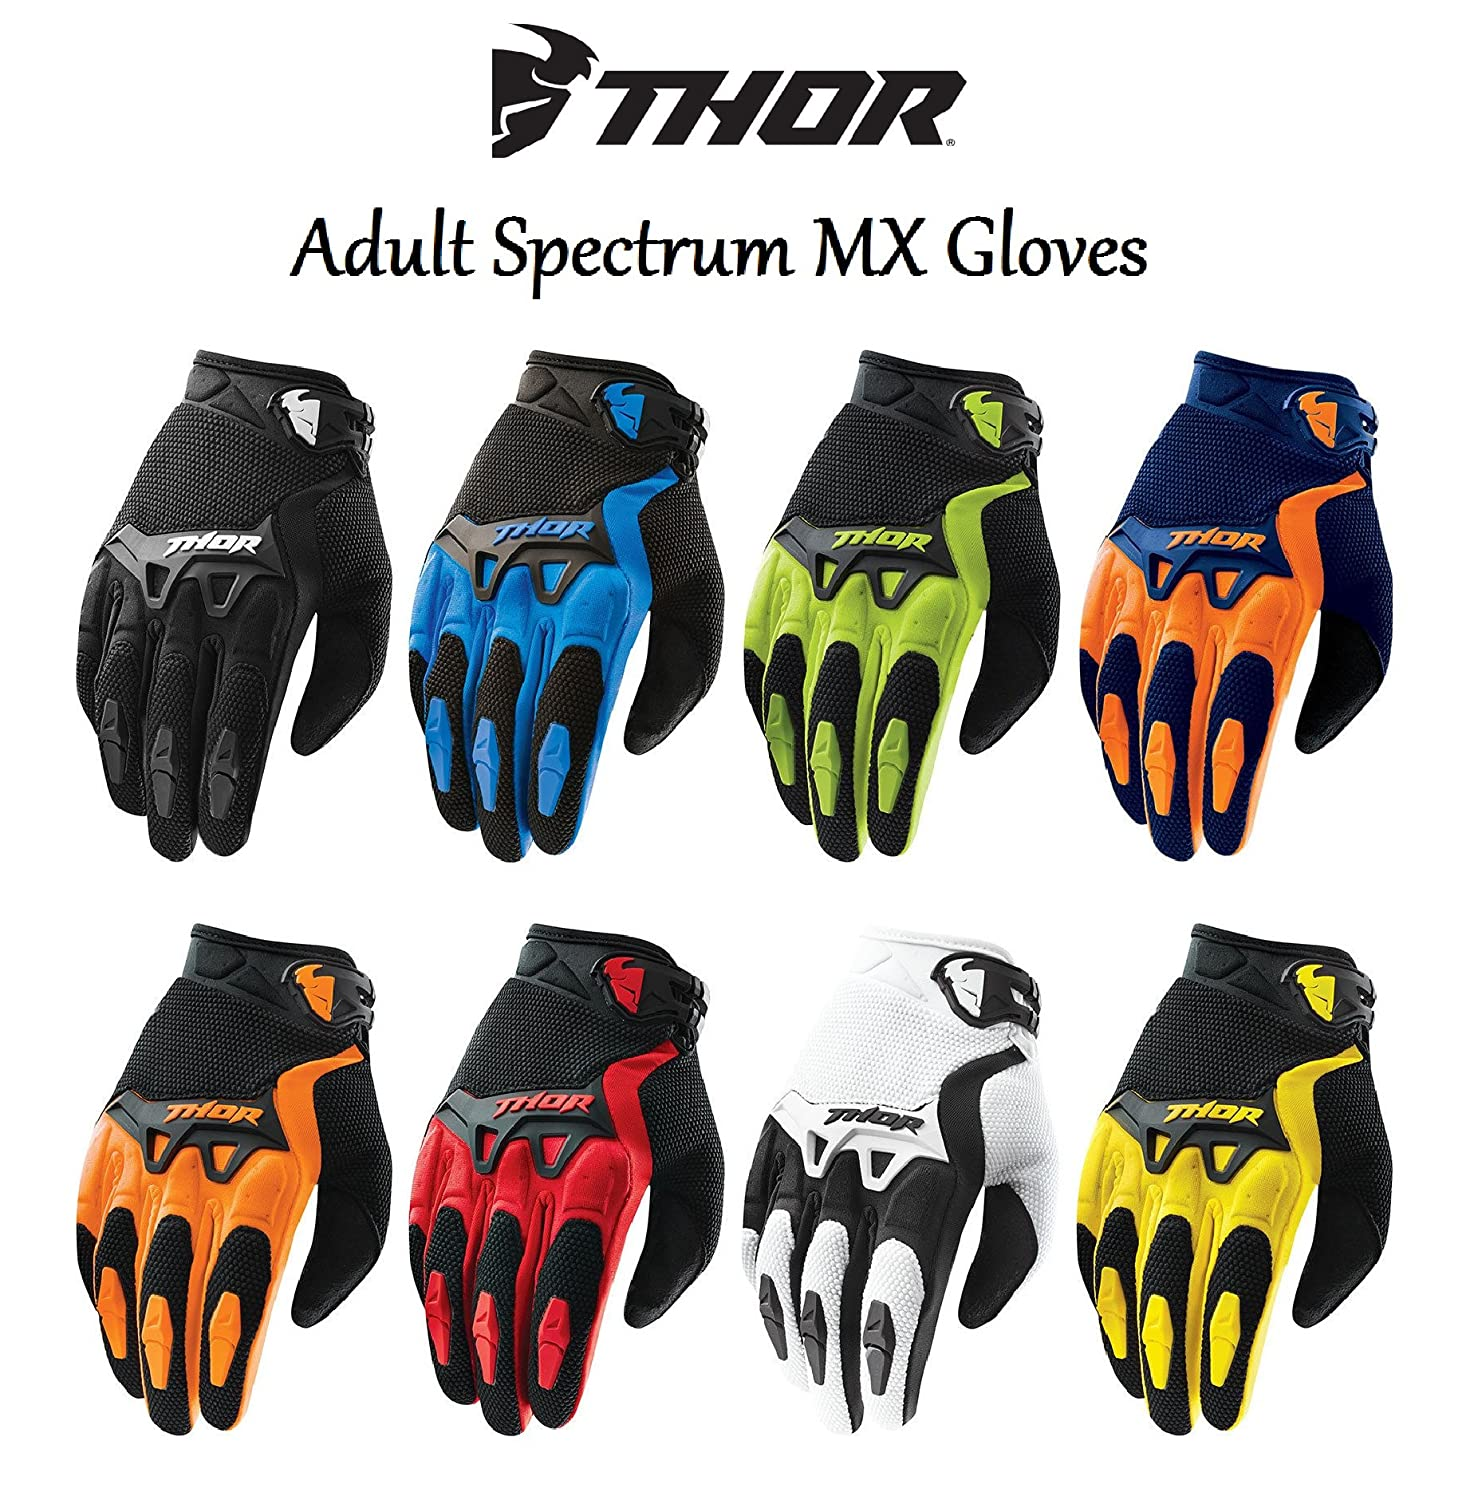 NEW 2018 ADULT MOTORBIKE MX GLOVES - THOR SPECTRUM Motocross Enduro Quad PIT Dirt-Bike ATV Racing Sports Trials MTB BMX Off Road Adult Gloves THOR GLOVES